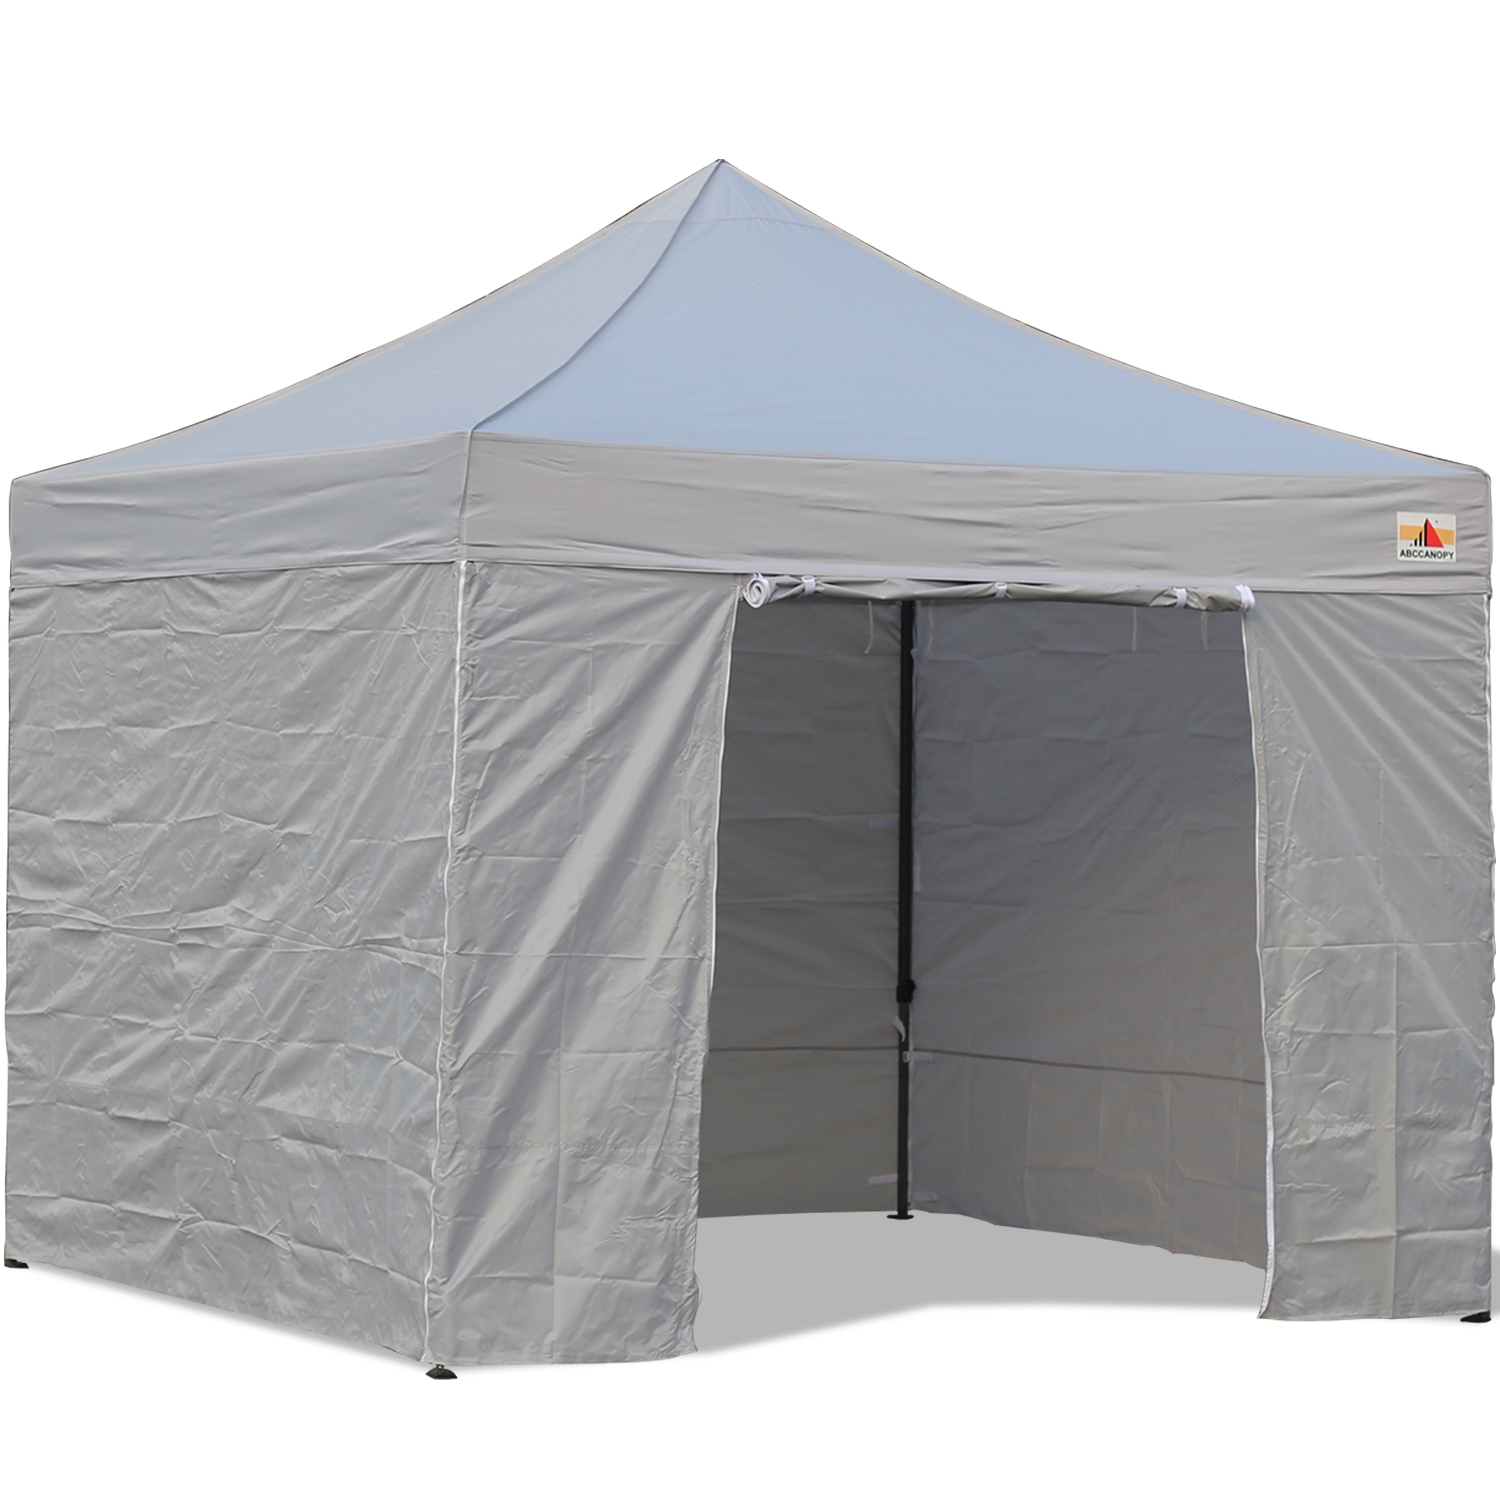 Ez Up Canopy : Abccanopy gray deluxe ez pop up canopy package